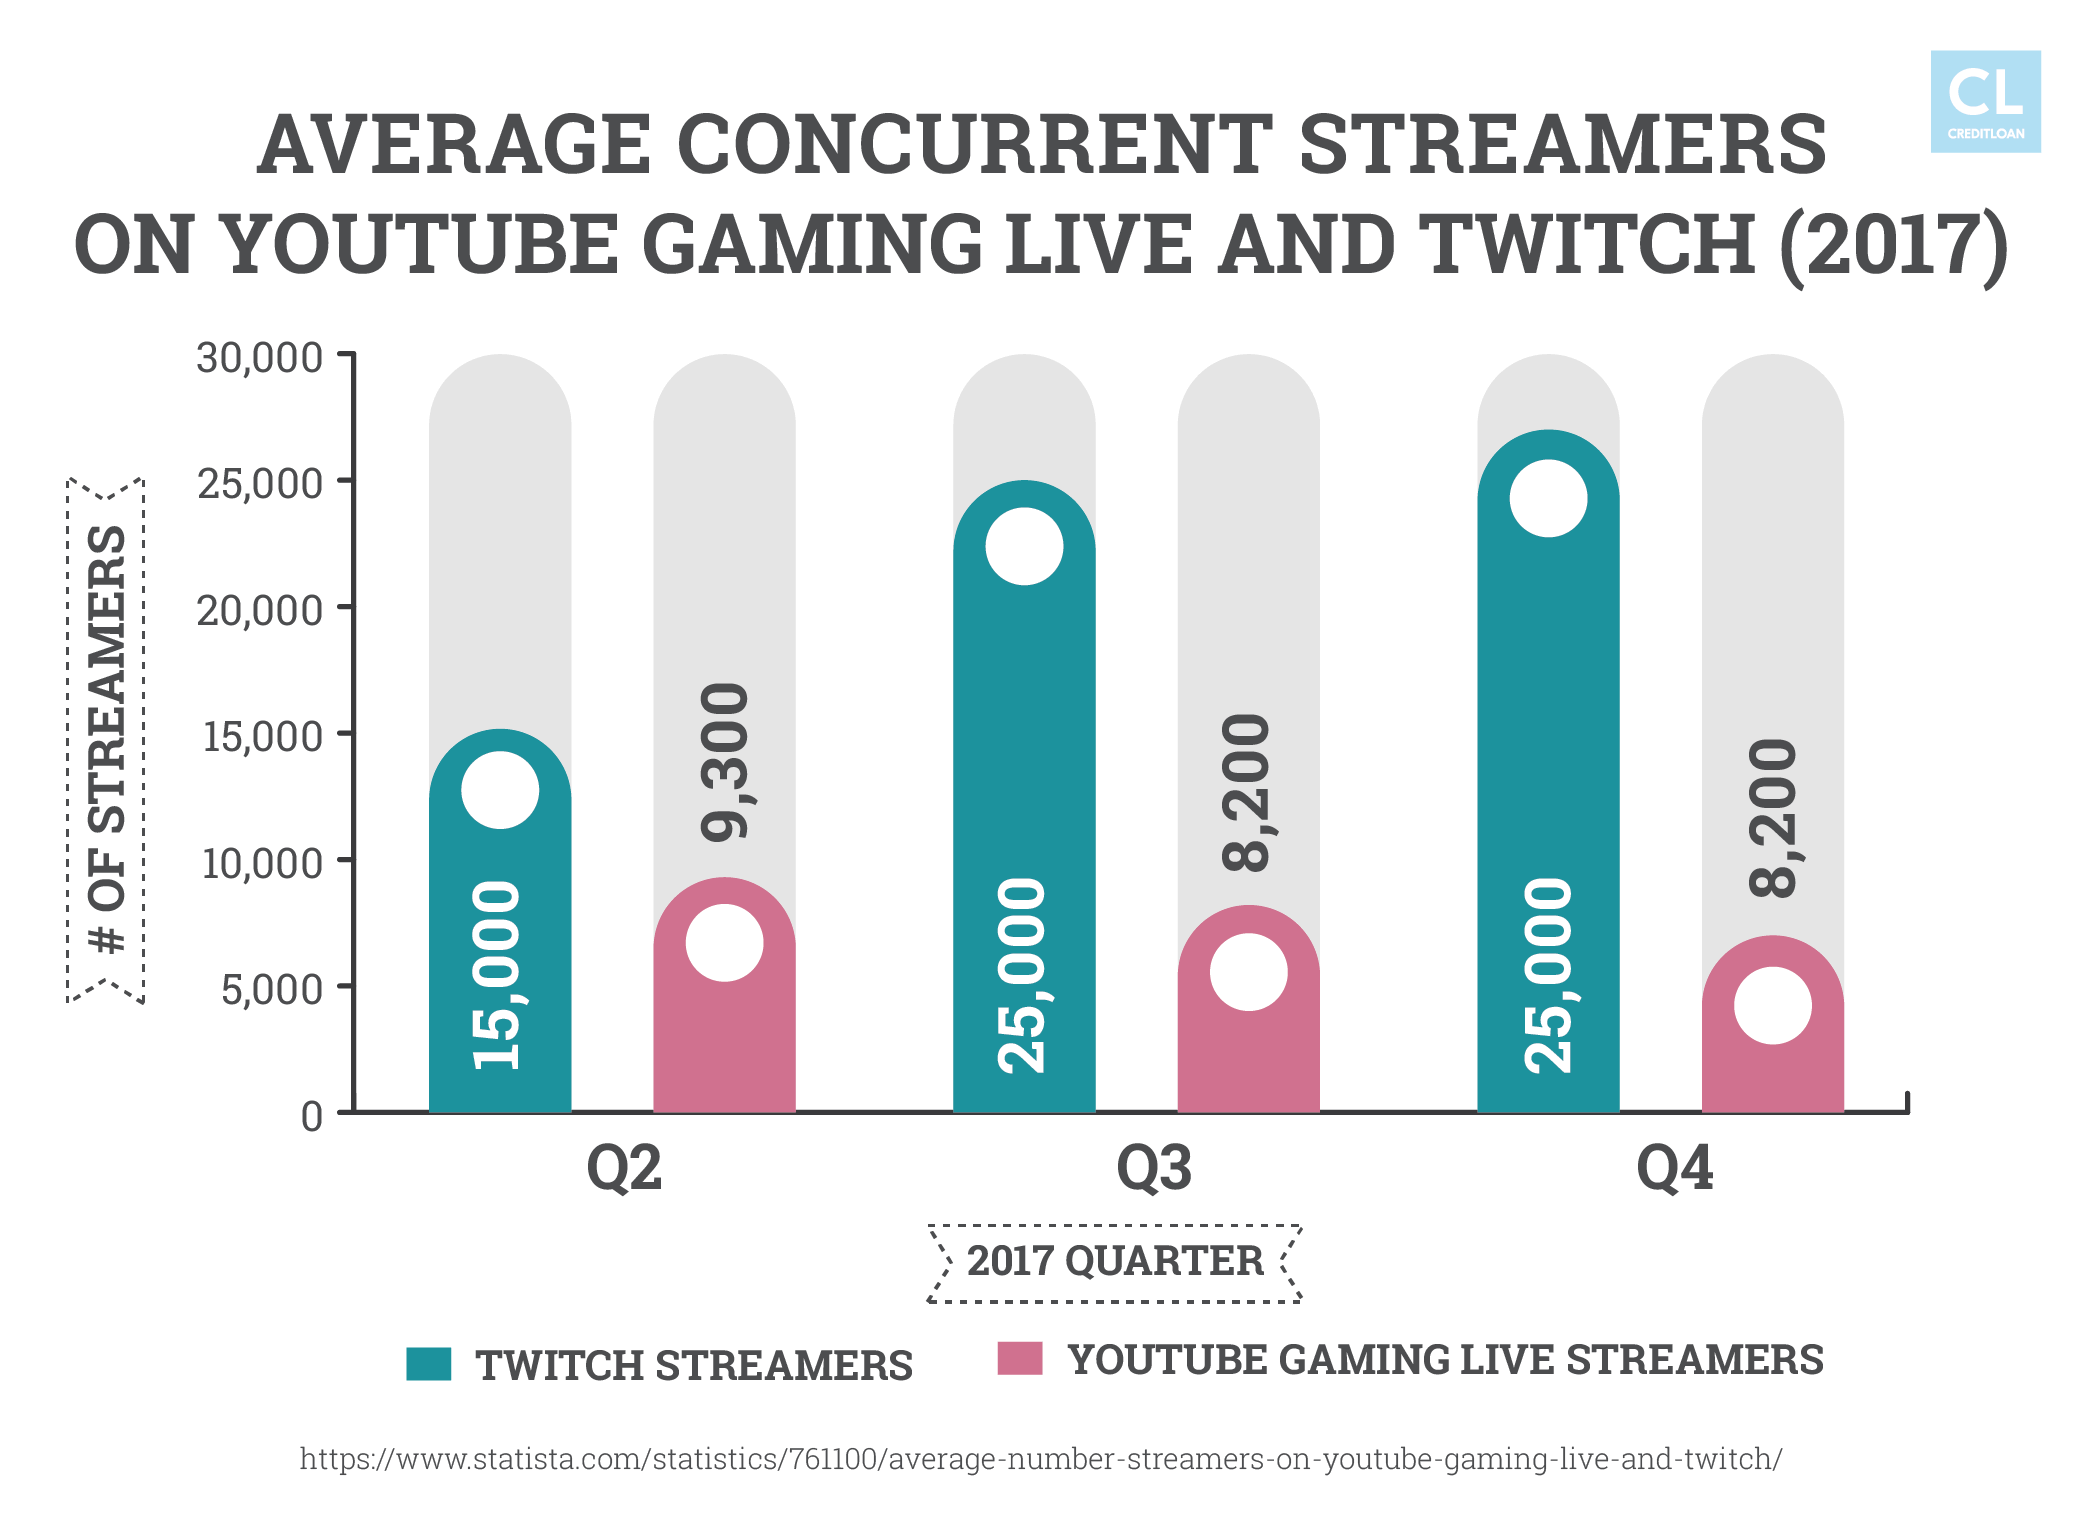 Average Concurrent Streamers on YouTube Gaming Live and Twitch (2017)